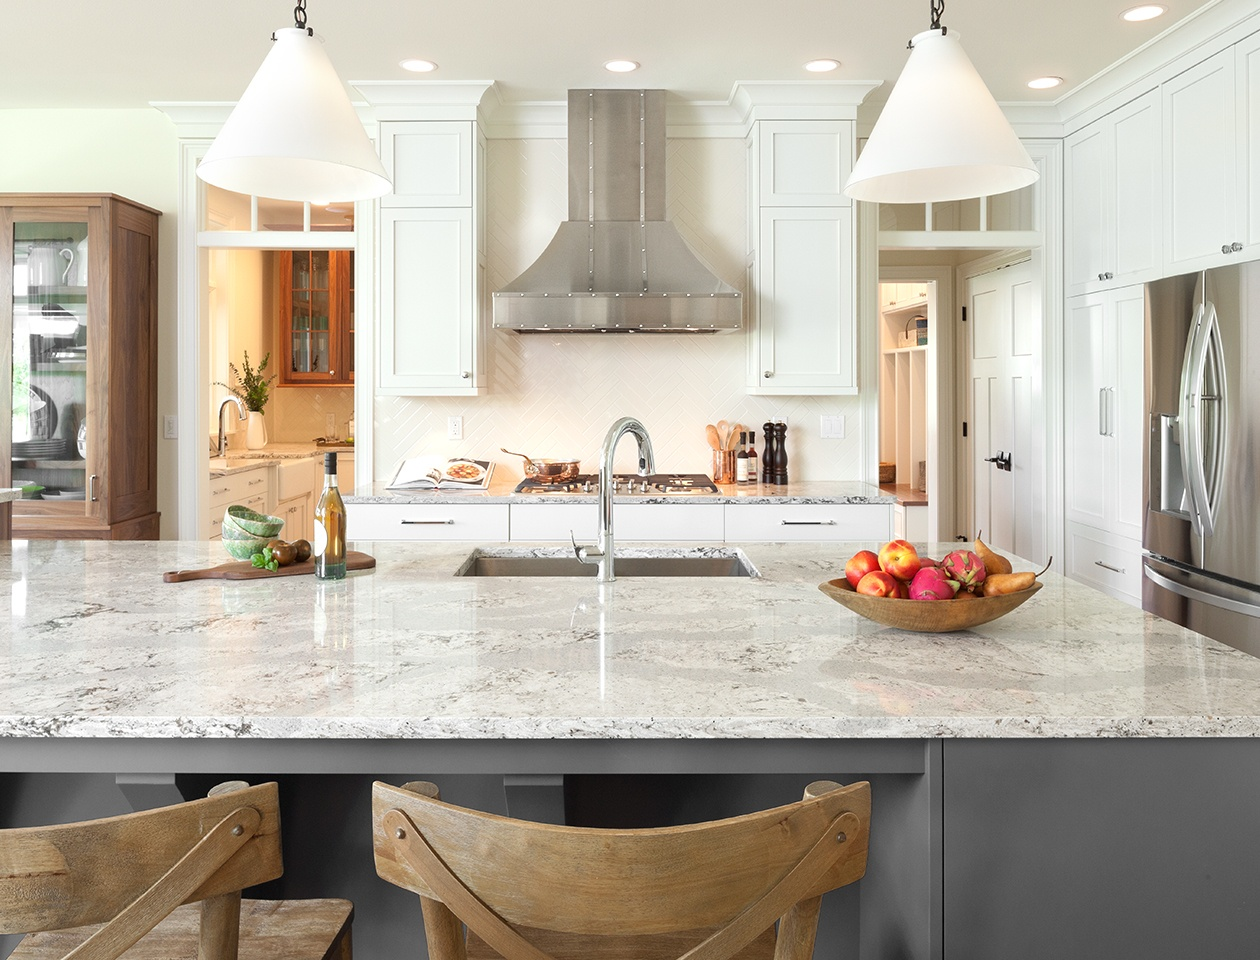 Taupe Quartz Countertop 15 Stunning Quartz Countertop Colors To Gather Inspiration From